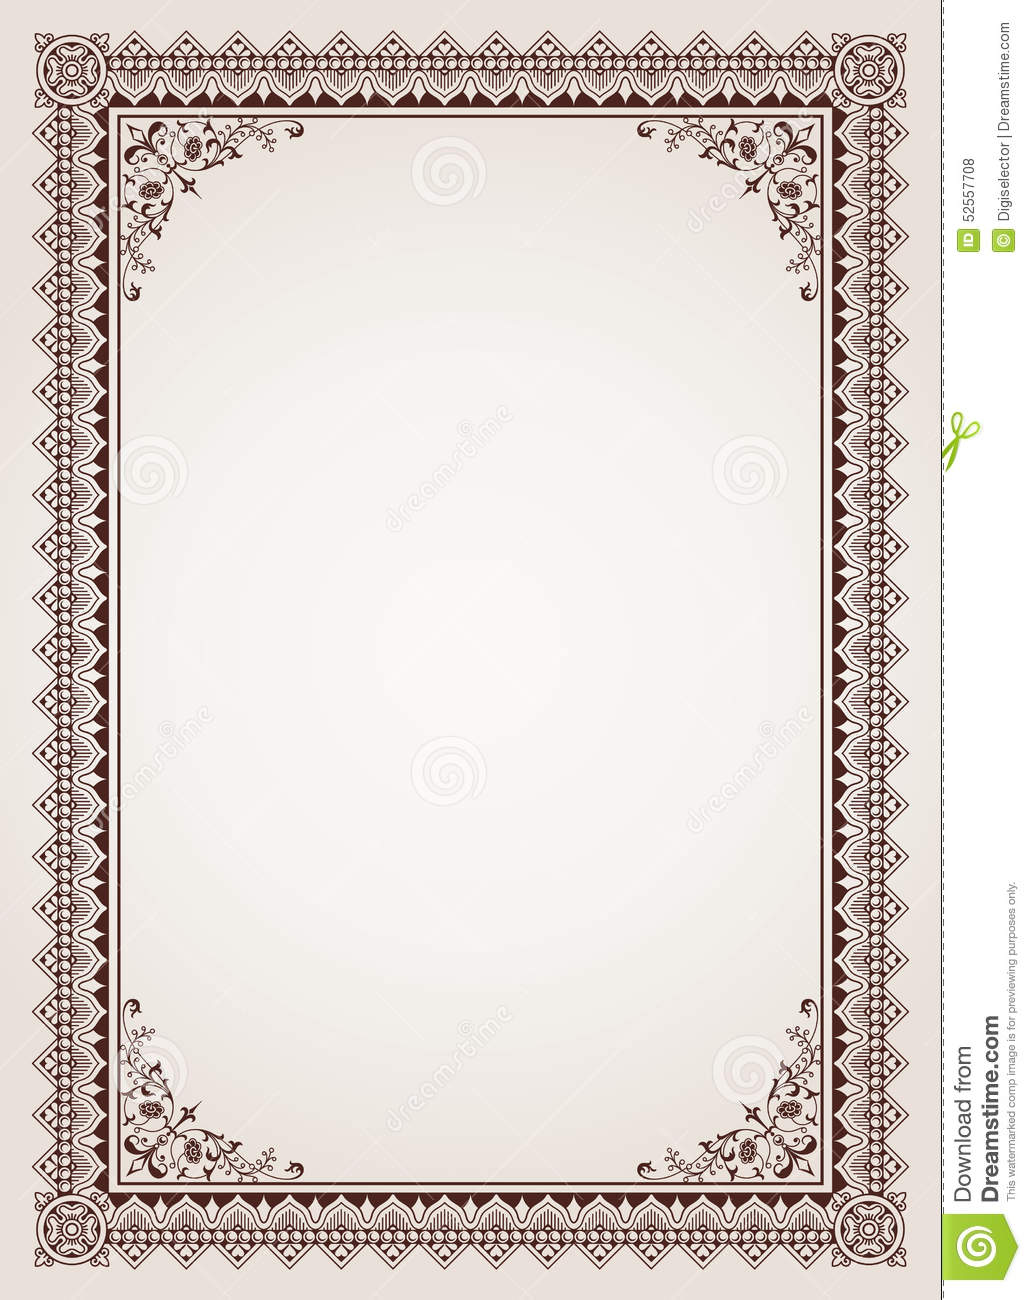 Decorative Border Frame Certificate Template Vector Stock Vector ...